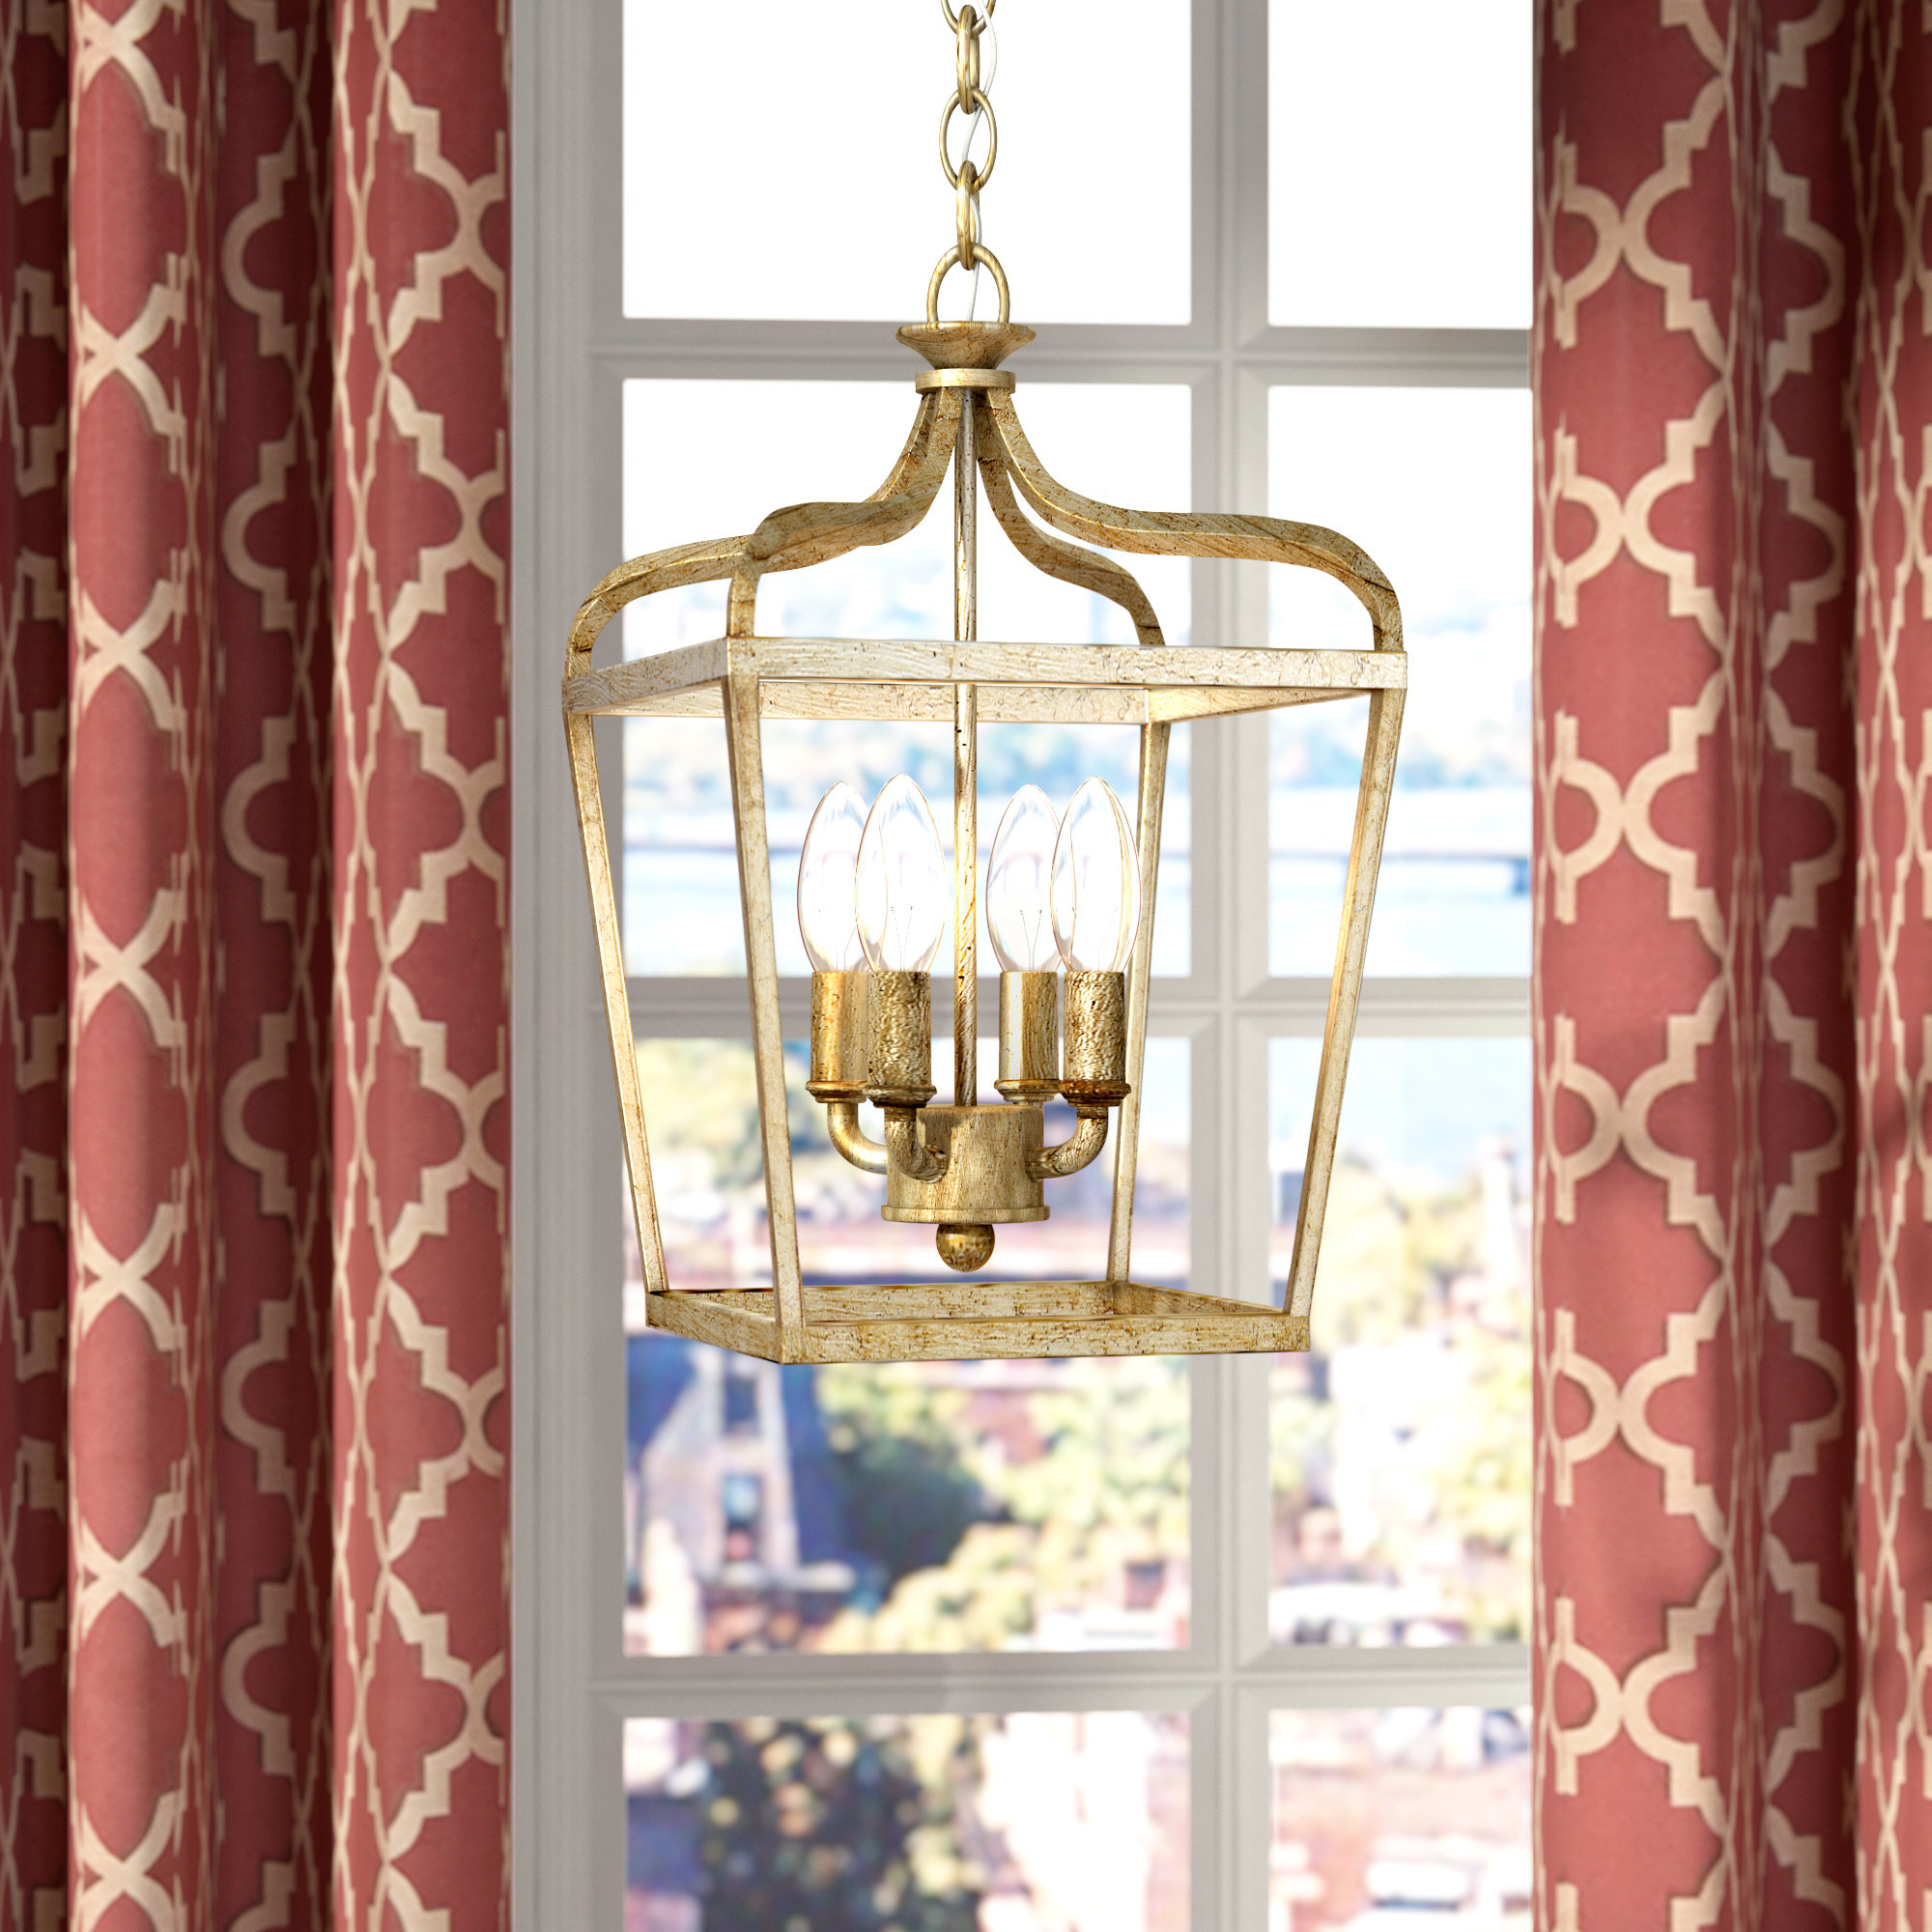 Willa Arlo Interiors Seraphine 4 Light Foyer Pendant With Regard To Finnick 4 Light Foyer Pendants (View 17 of 30)